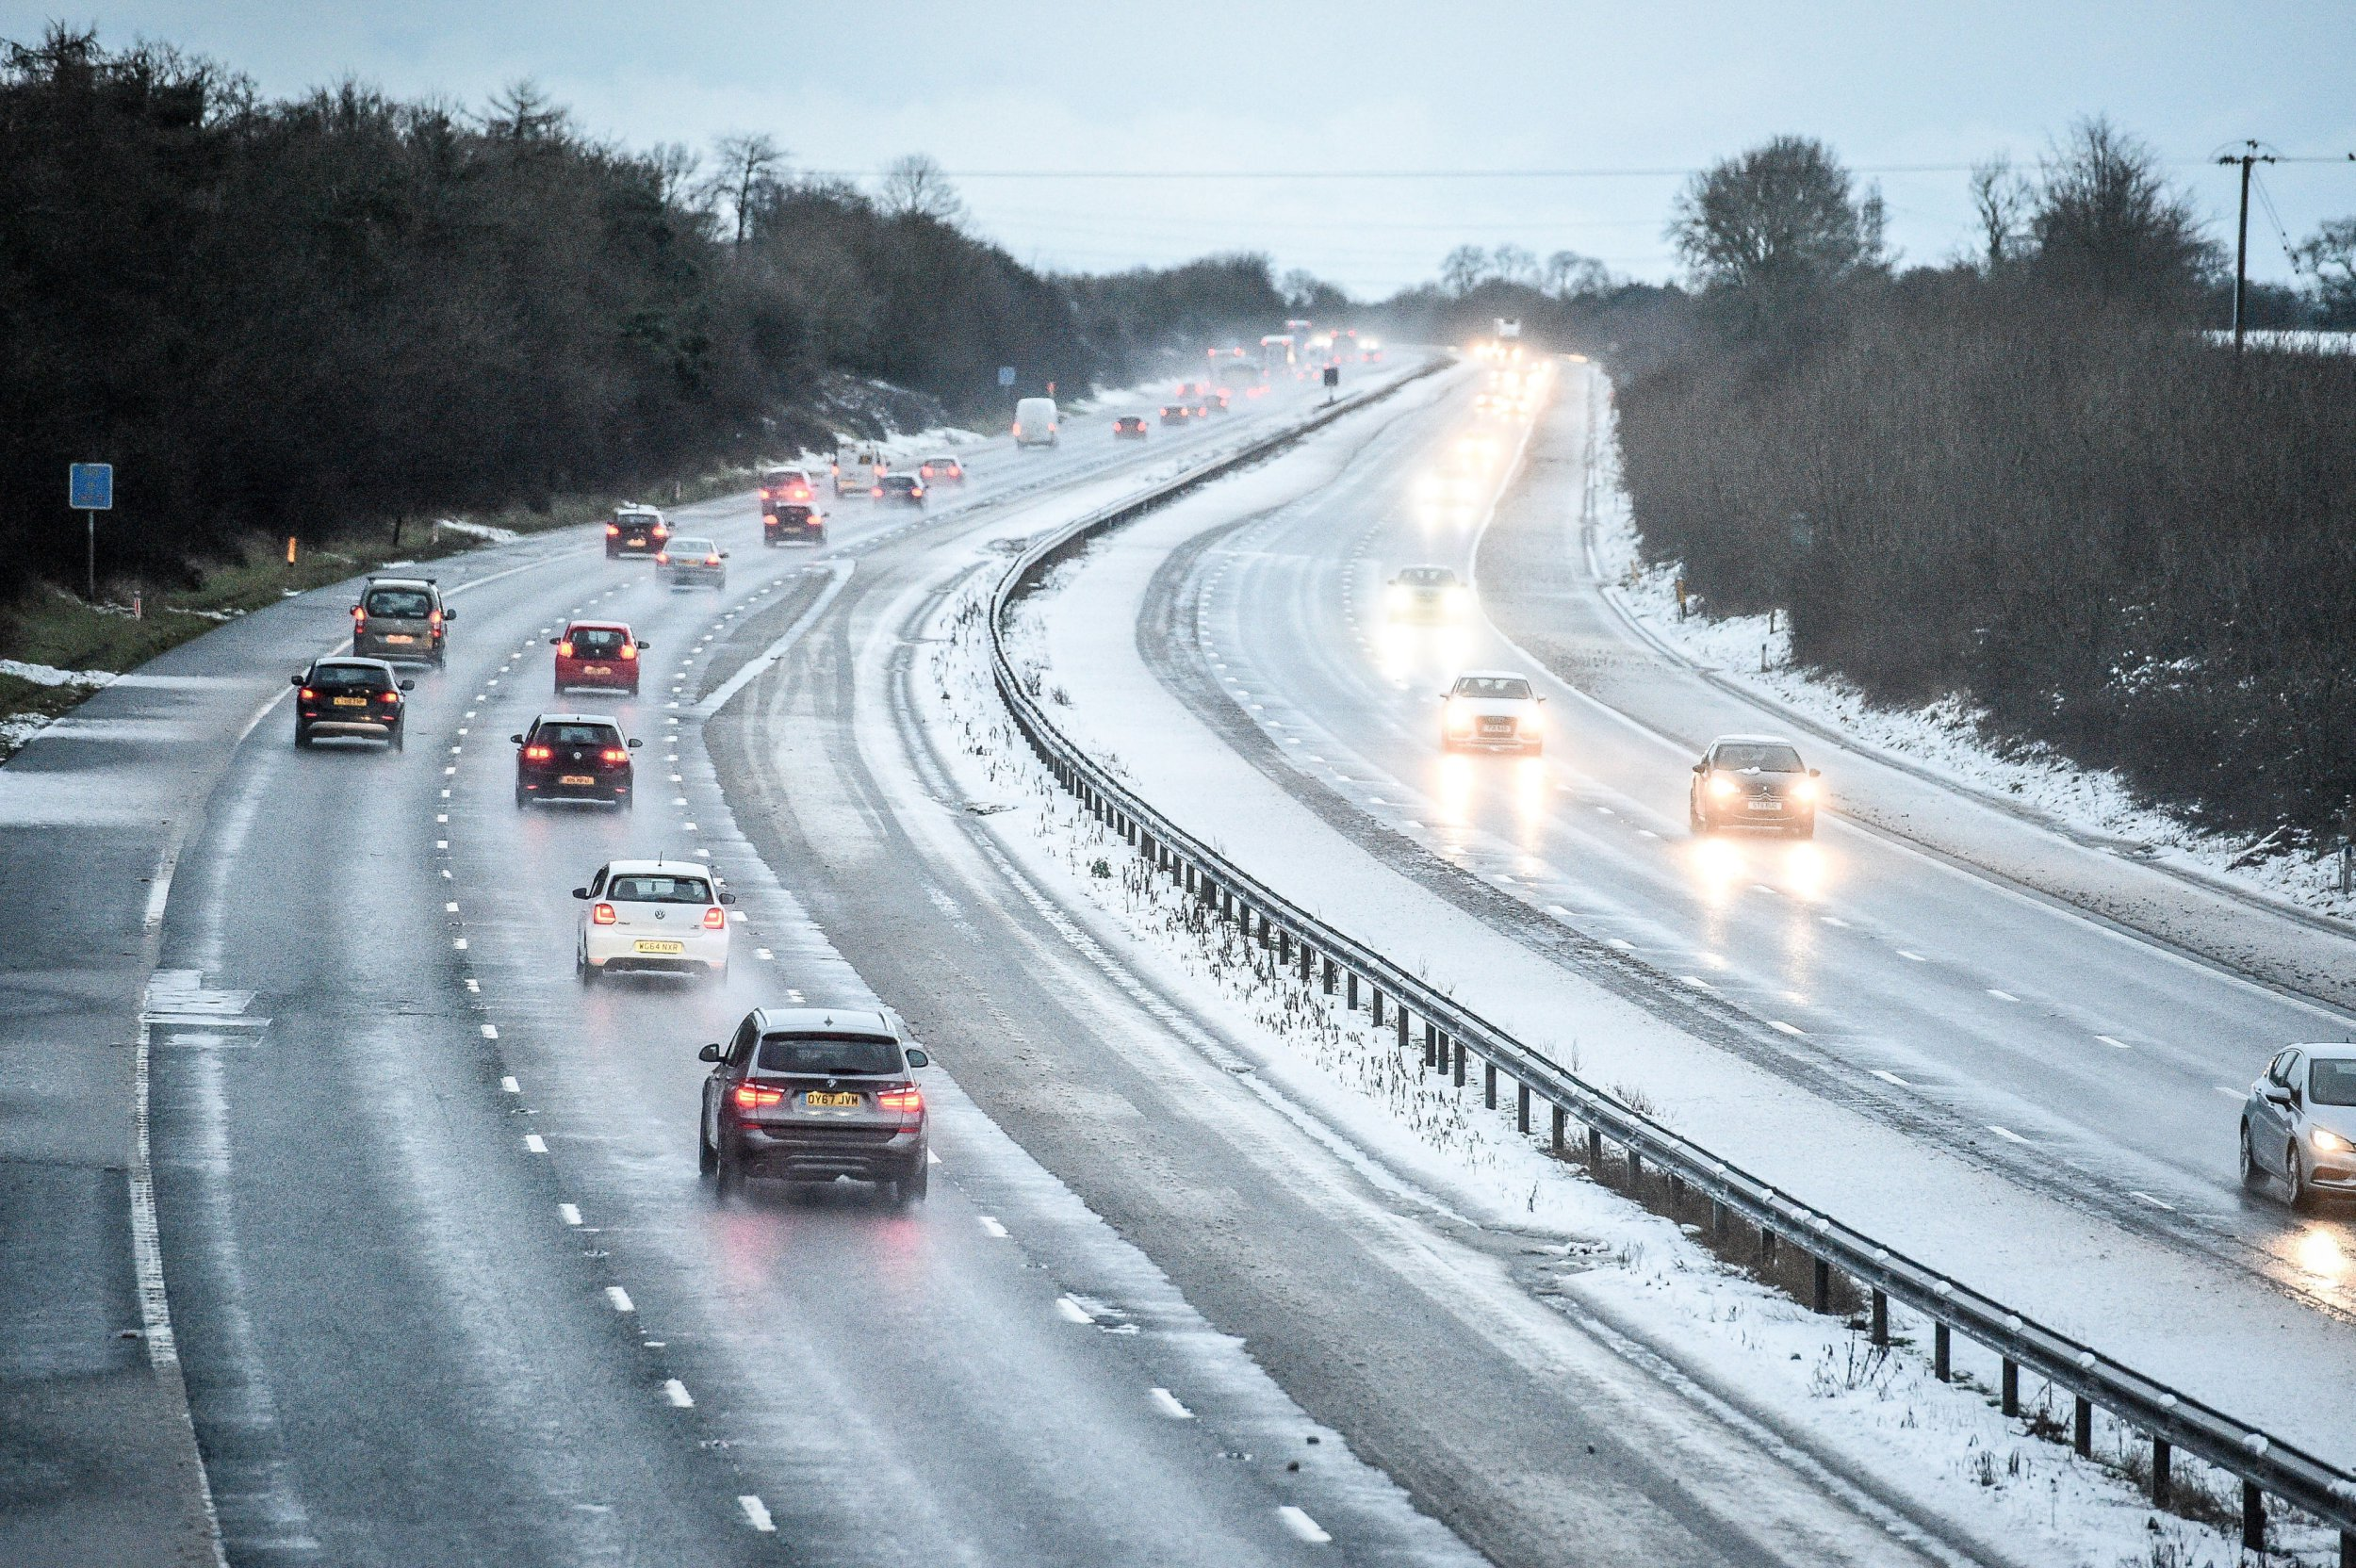 Snow reduces the M5 motorway down to two lanes between junction 14 and 15 in South Gloucestershire after overnight snow has caused travel disruptions across parts of the UK.